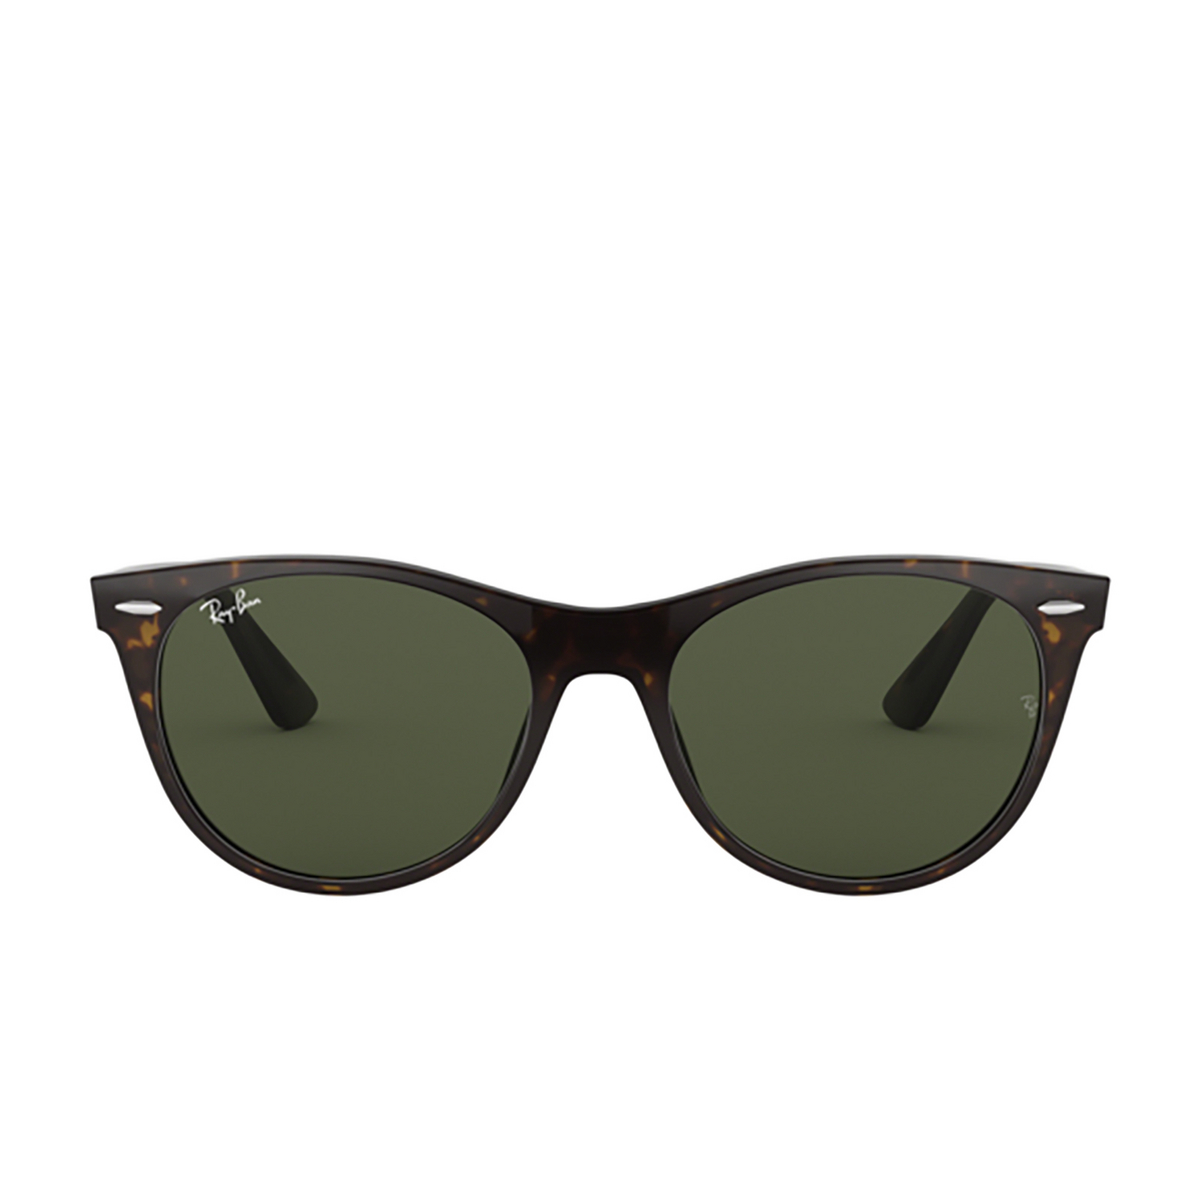 Ray-Ban® Square Sunglasses: Wayfarer Ii RB2185 color Tortoise 902/31 - front view.